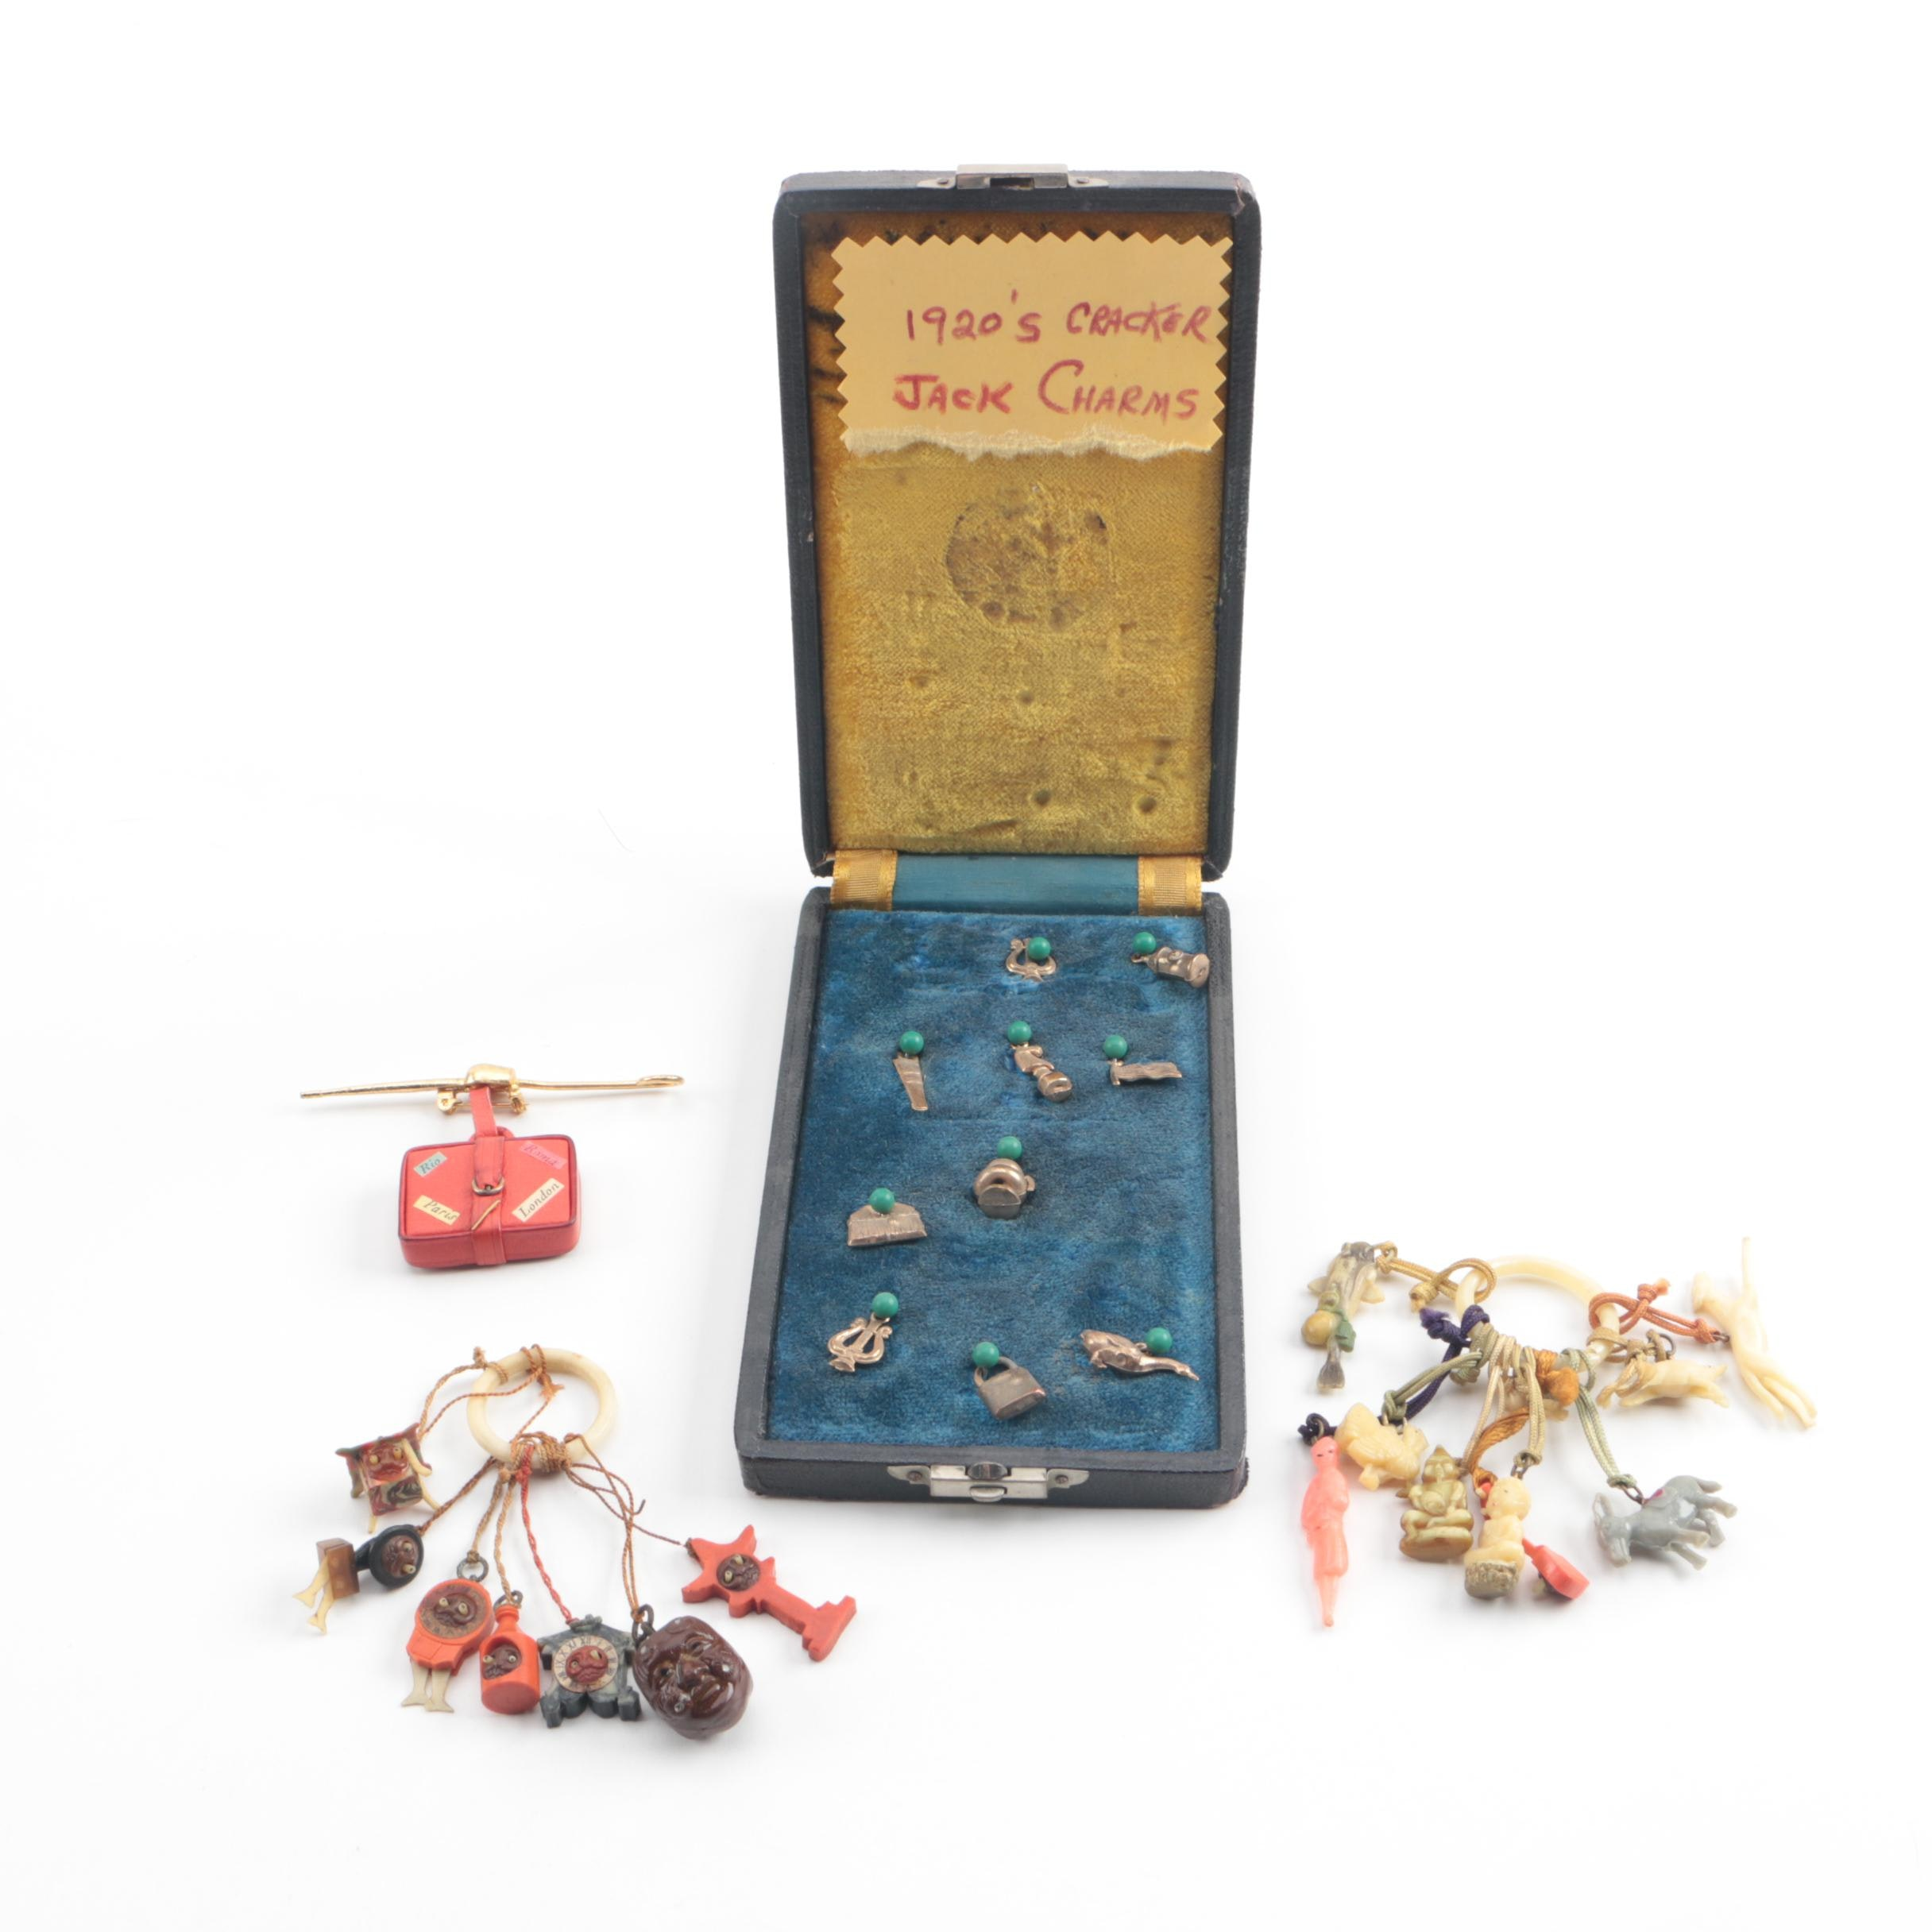 Vintage Early Plastic, Leather, and Metal Charms Including Cracker Jack Prizes